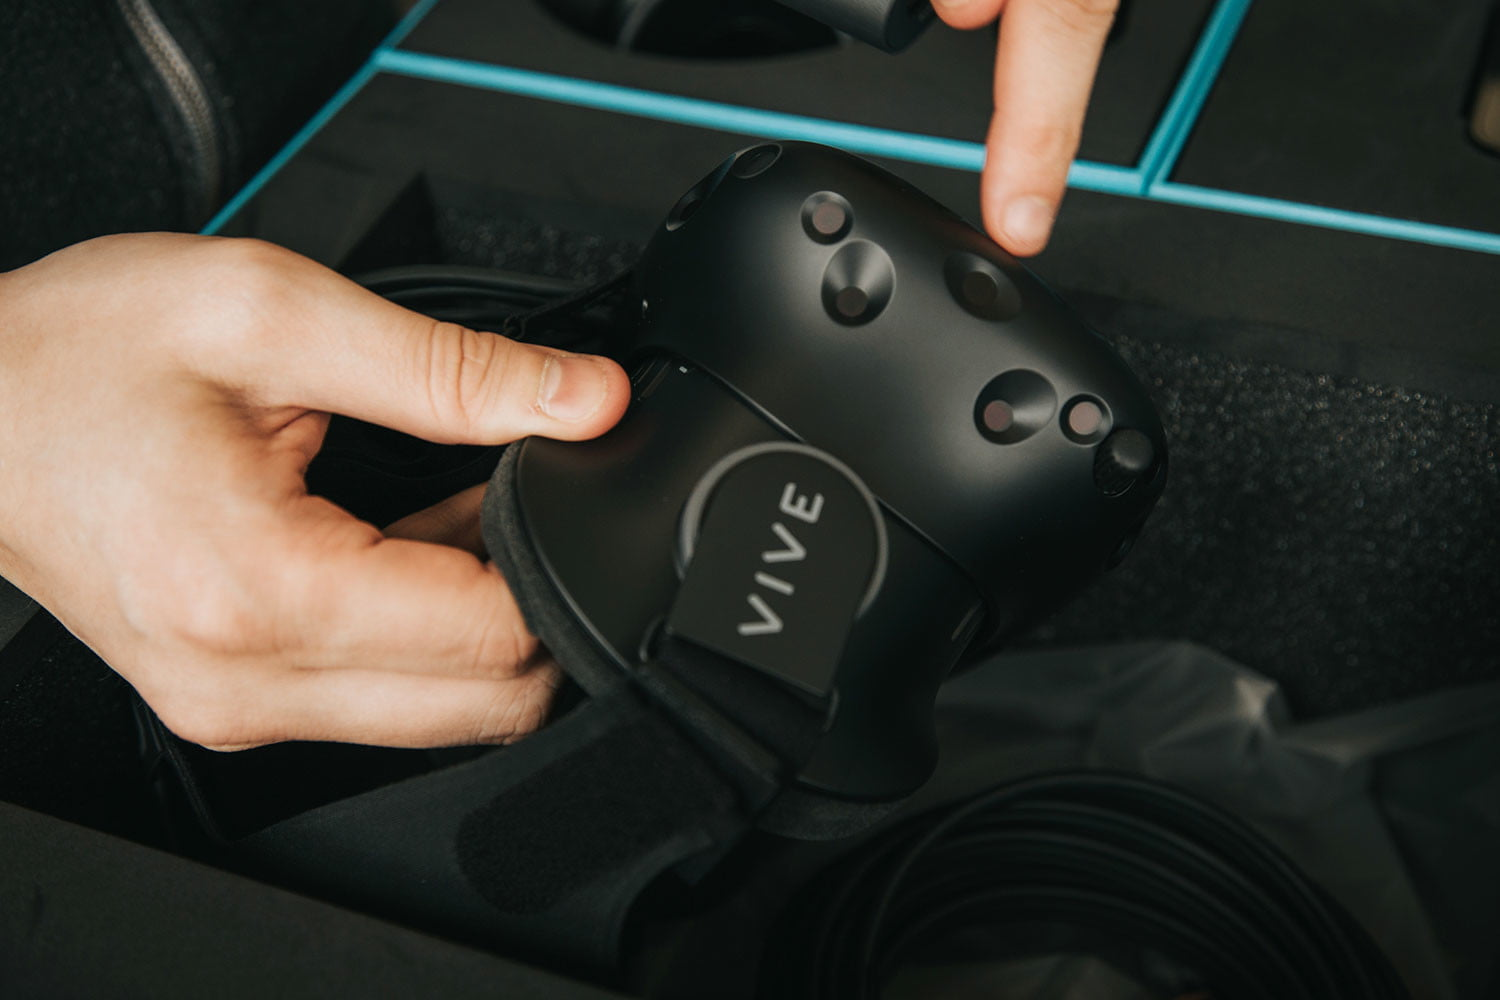 iFixit Found a Lot of Valve Inside the HTC Vive | Digital Trends